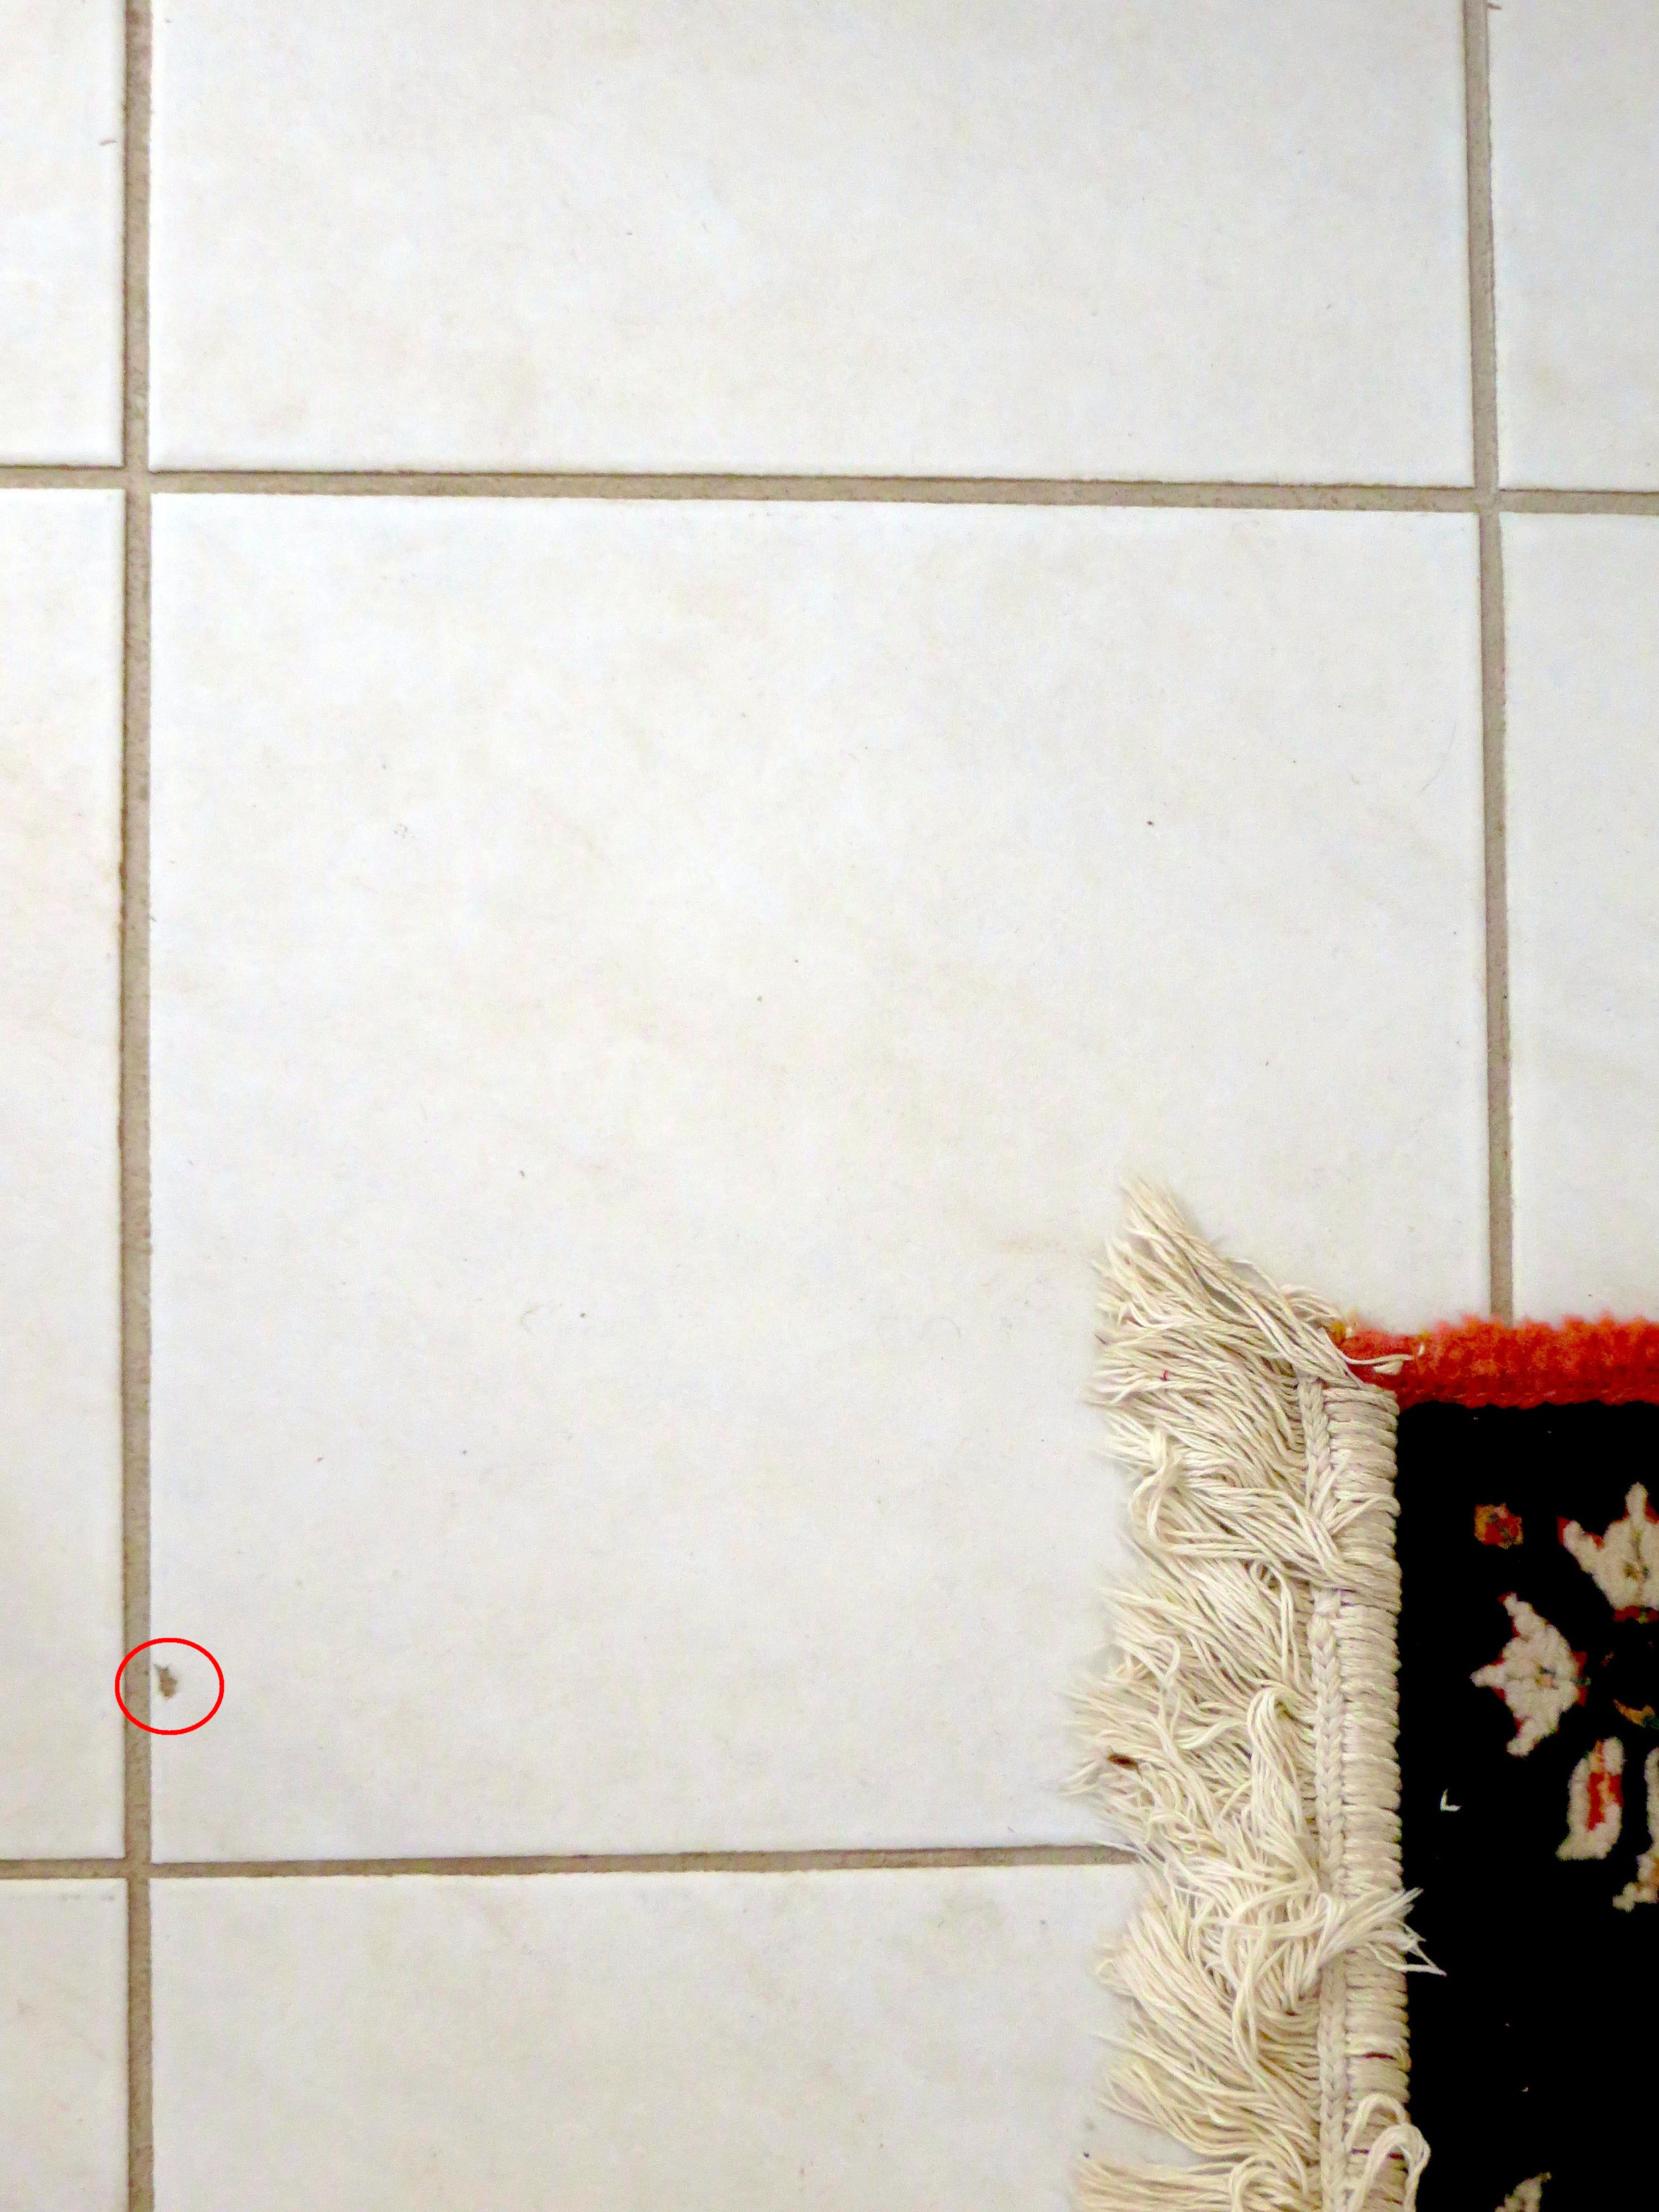 How To Repair A Chipped Ceramic Tile The Washington Post